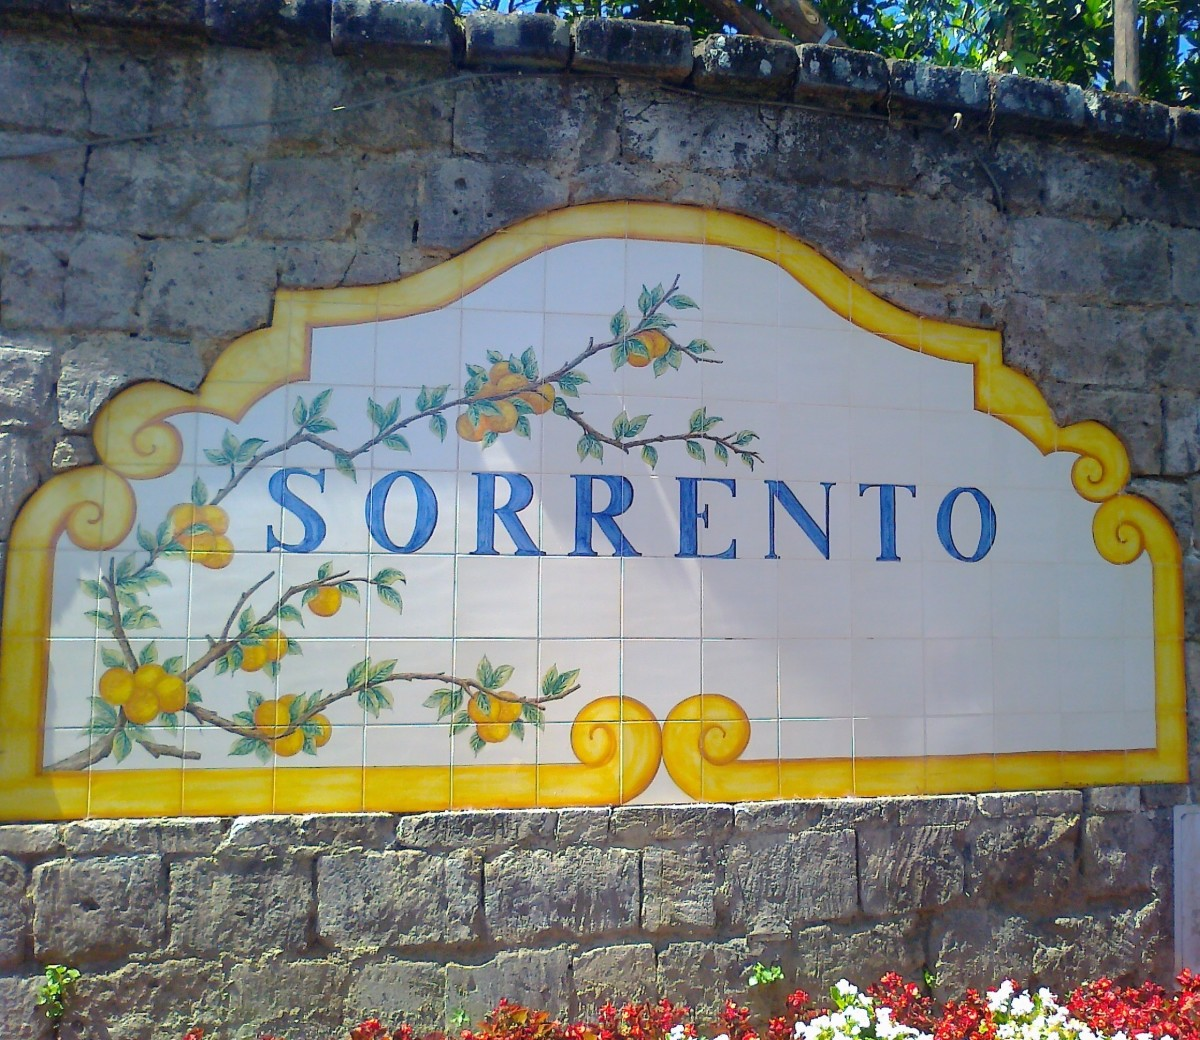 The lemon border hints at one of Sorrento's most notable achievements, Limoncello